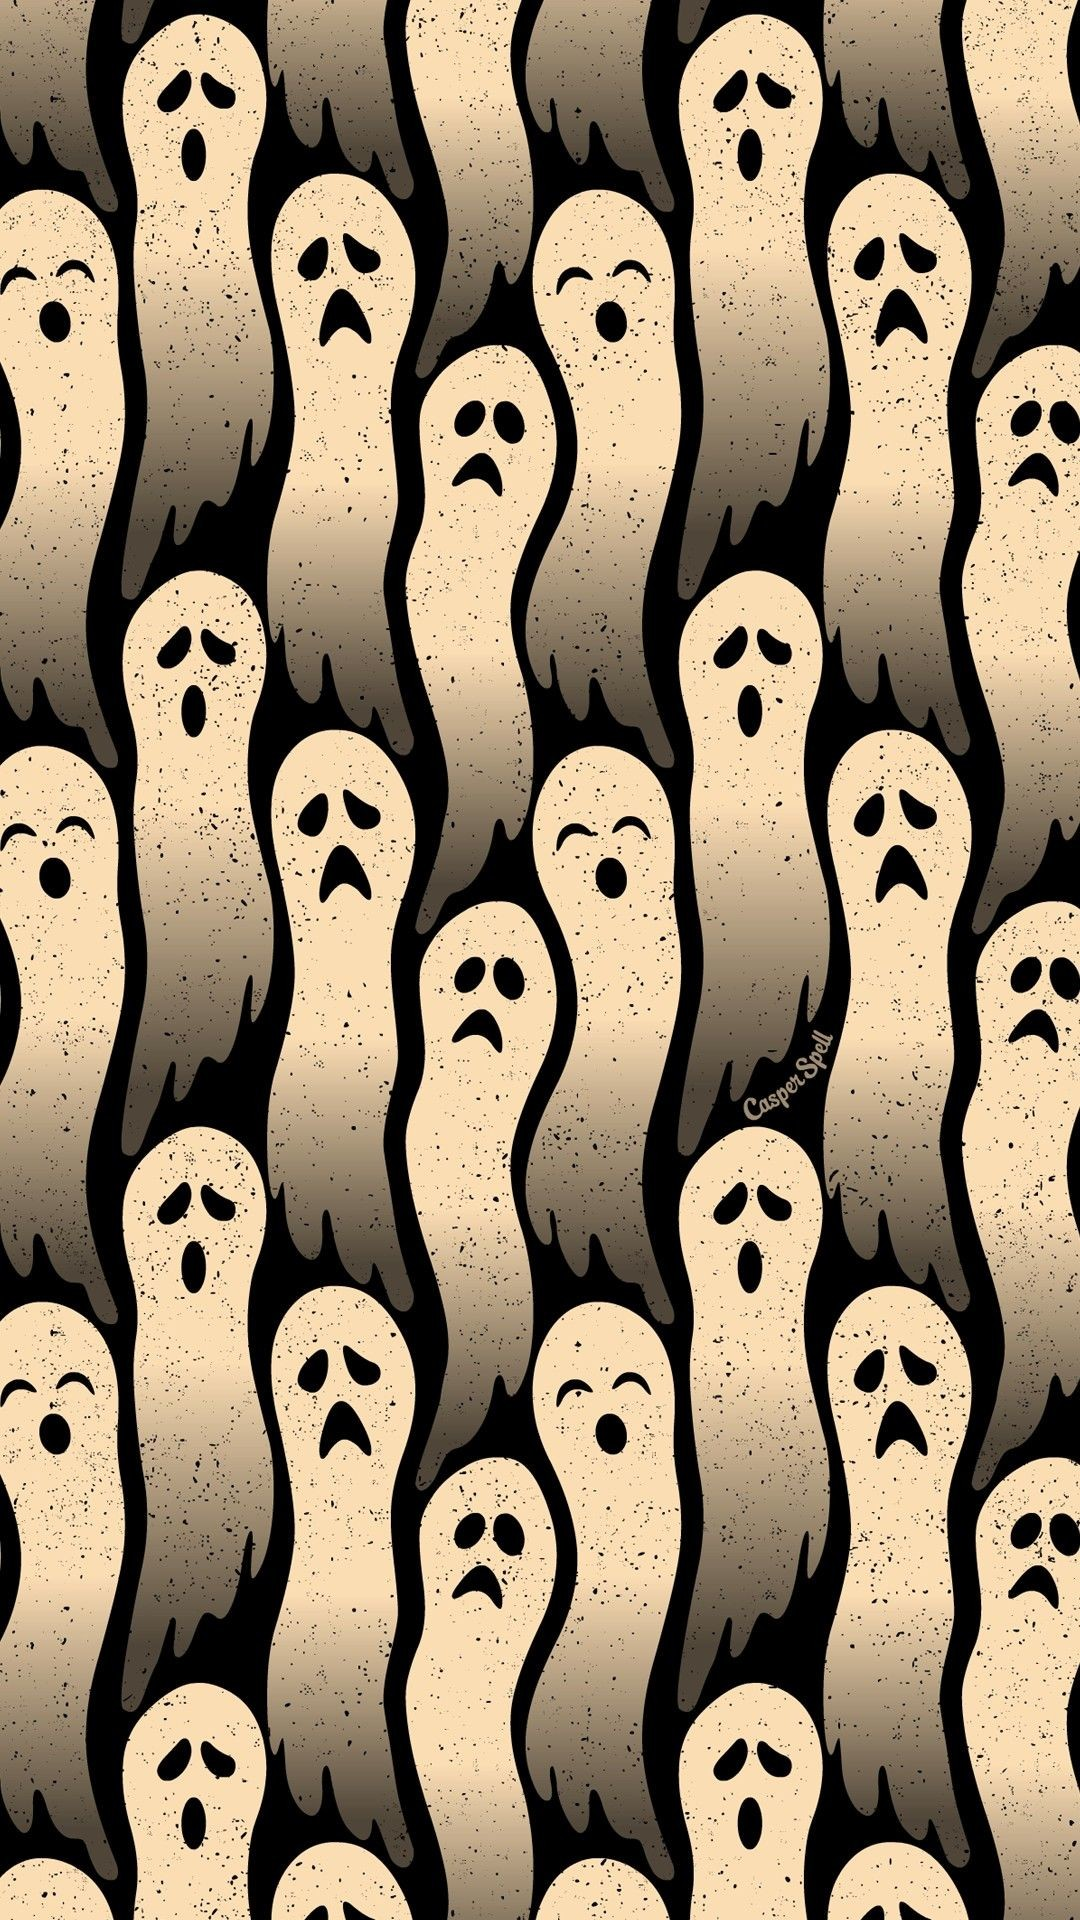 1080x1920 Ghosts repeat pattern Halloween background wallpaper patterns backgrounds  wallpapers spirits ethereal spooky cute Halloween Arts art illustration  drawing ...